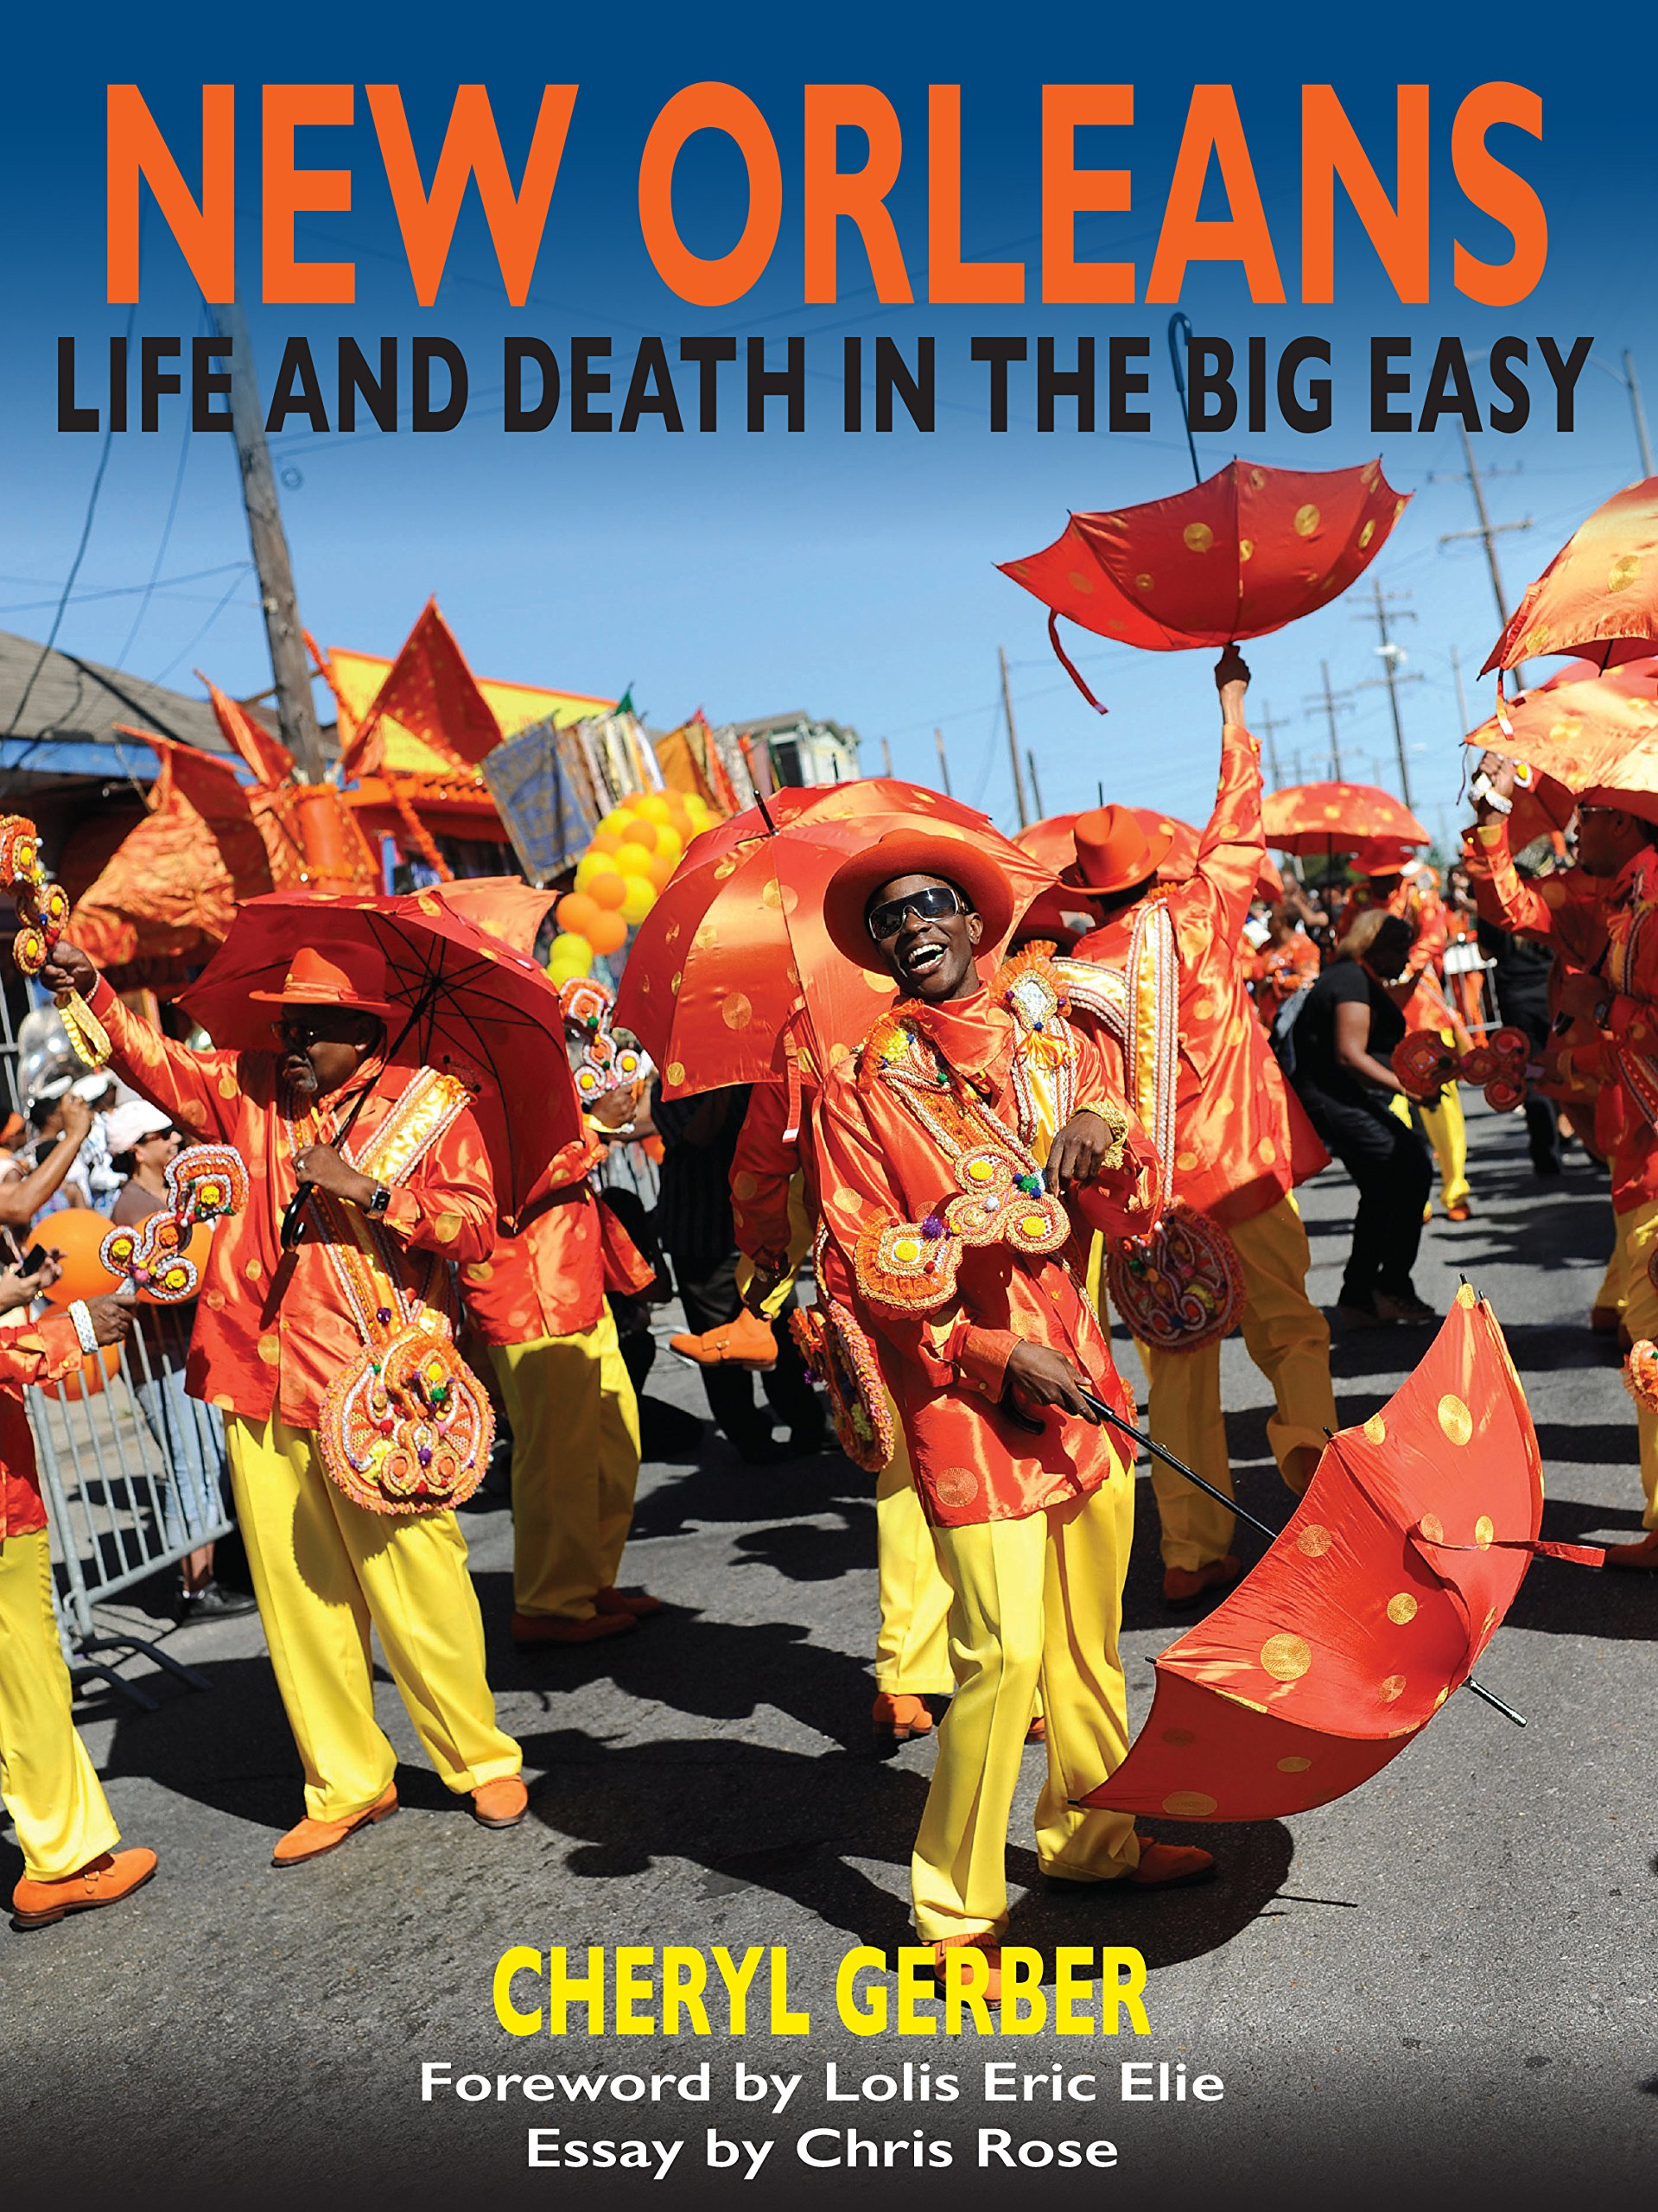 Amazon Com New Orleans Life And Death In The Big Easy 9781935754701 Cheryl Gerber Books